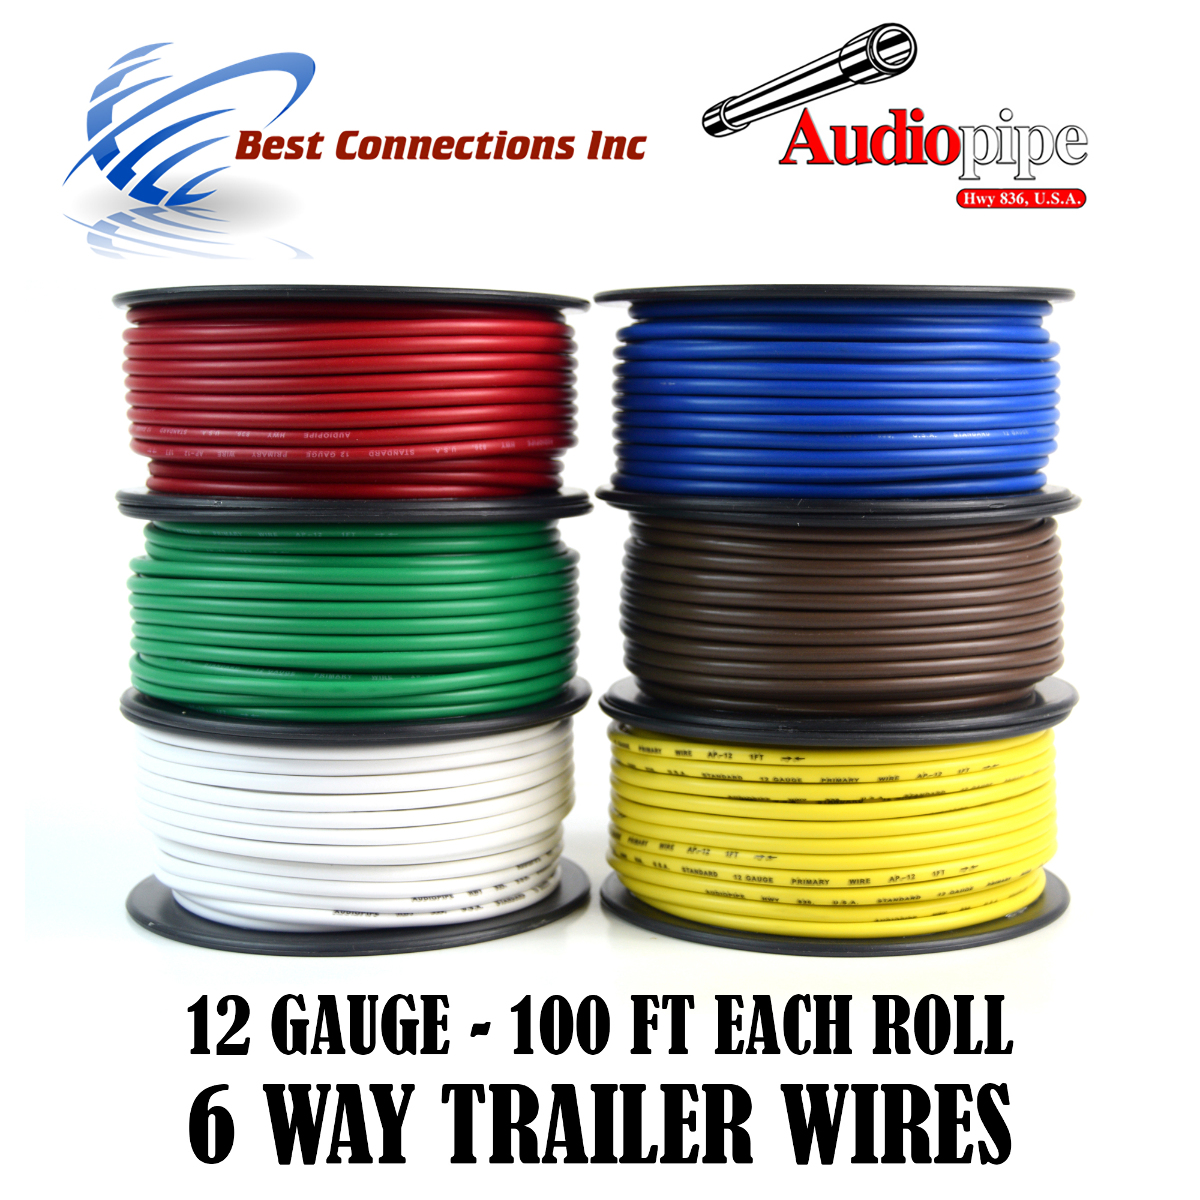 hight resolution of 6 way flexible cord trailer wire harness light cable led 12 gauge 100ft 6 colors walmart com